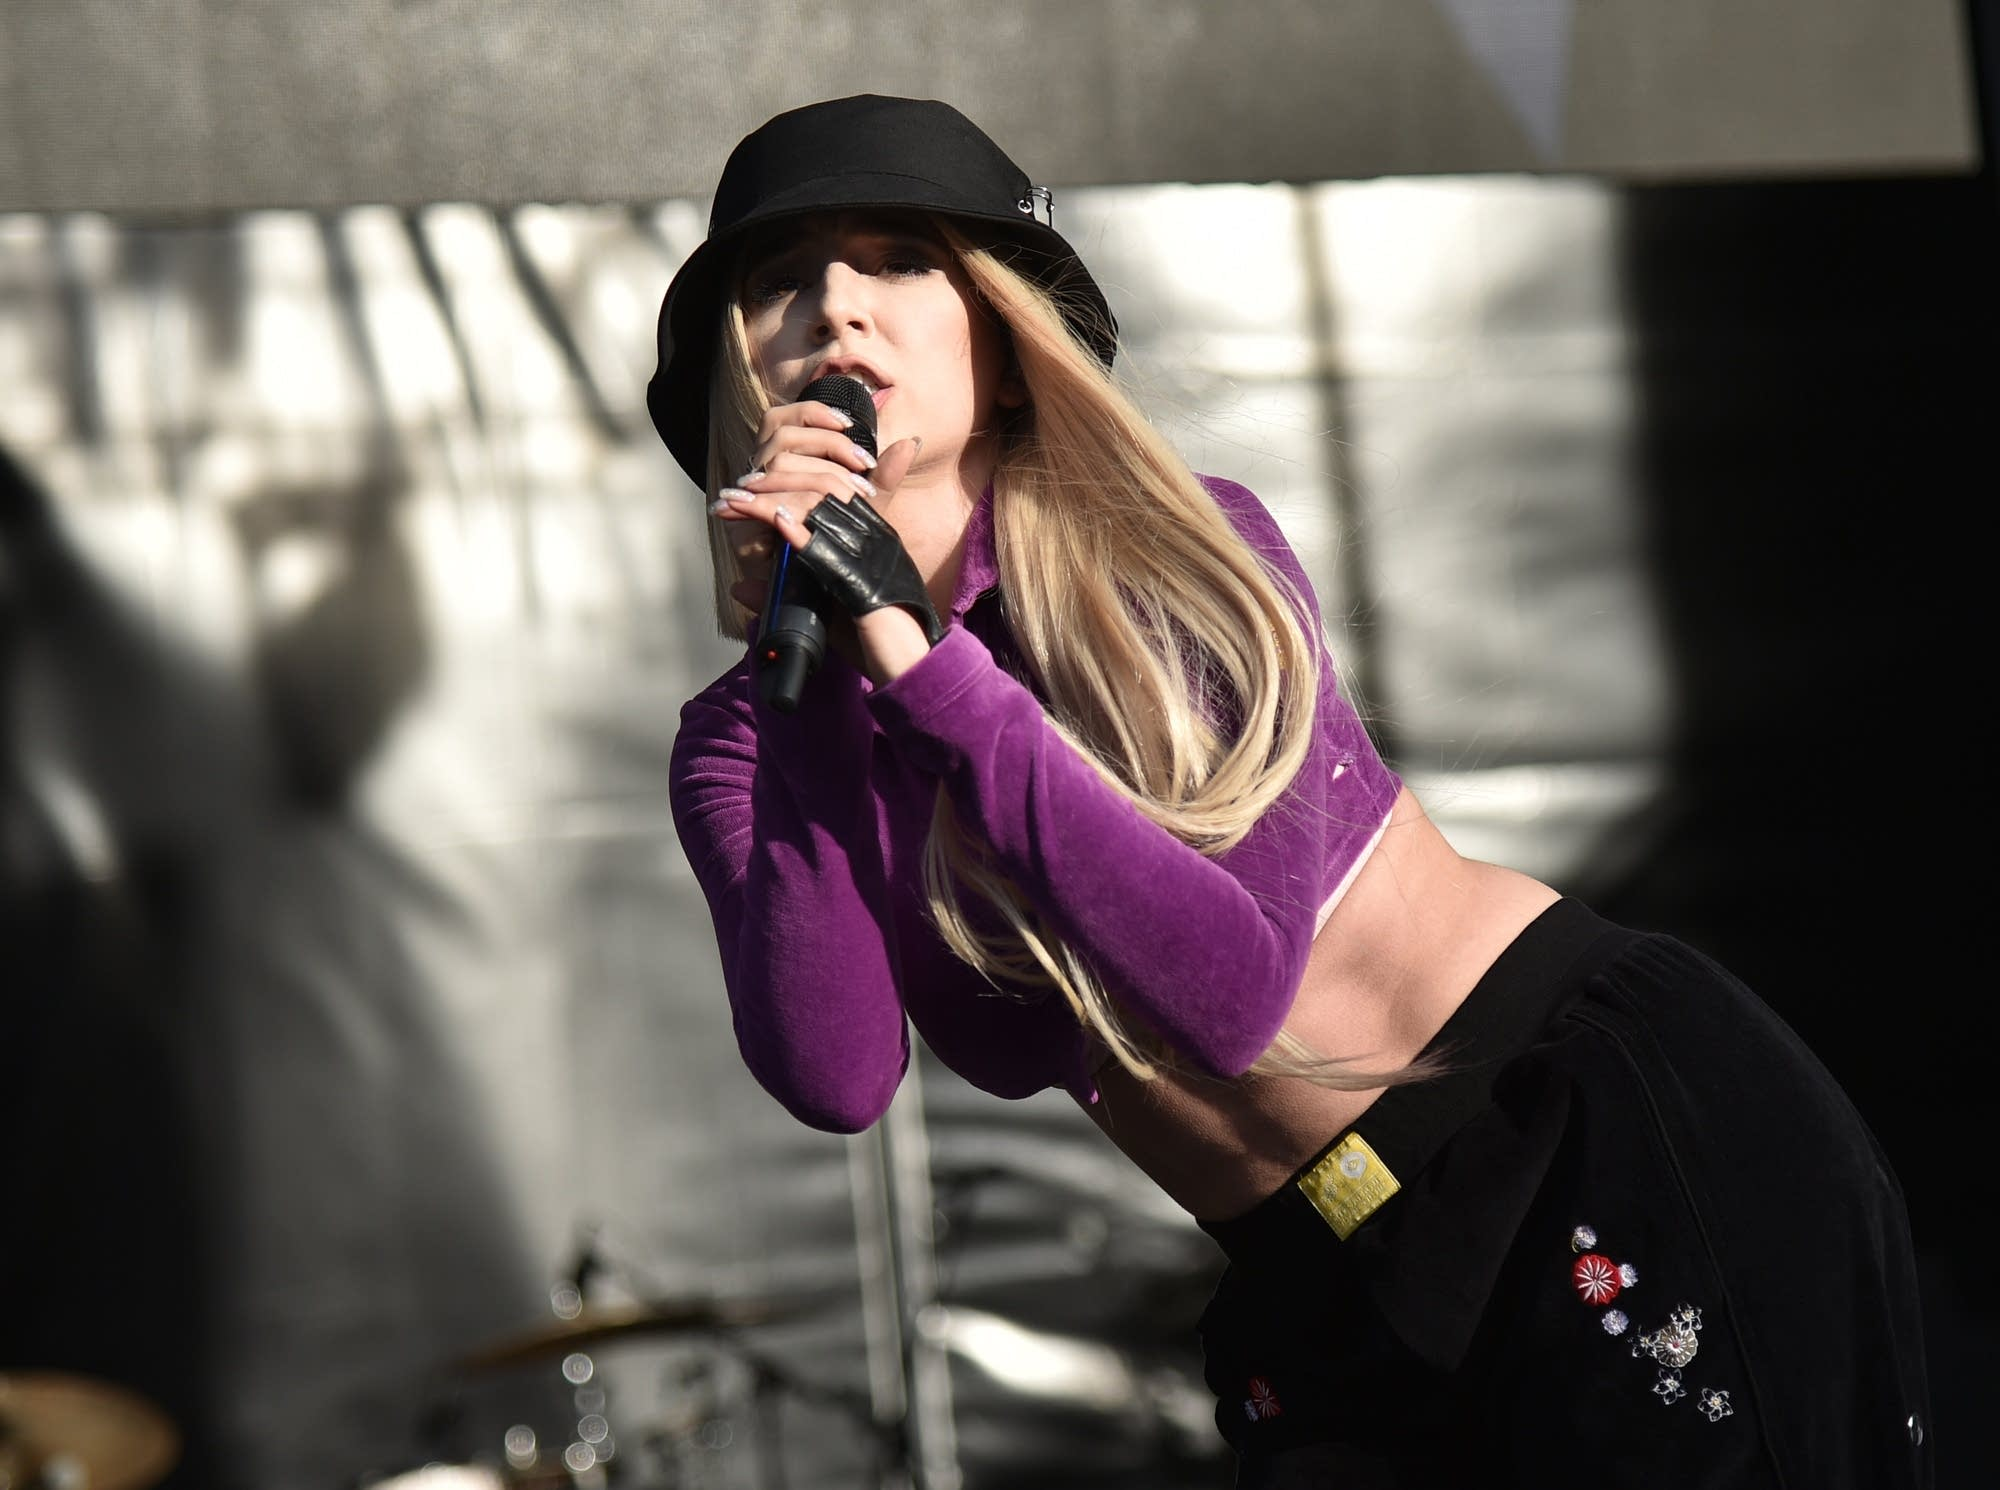 Ava Max performs in Wantagh, New York